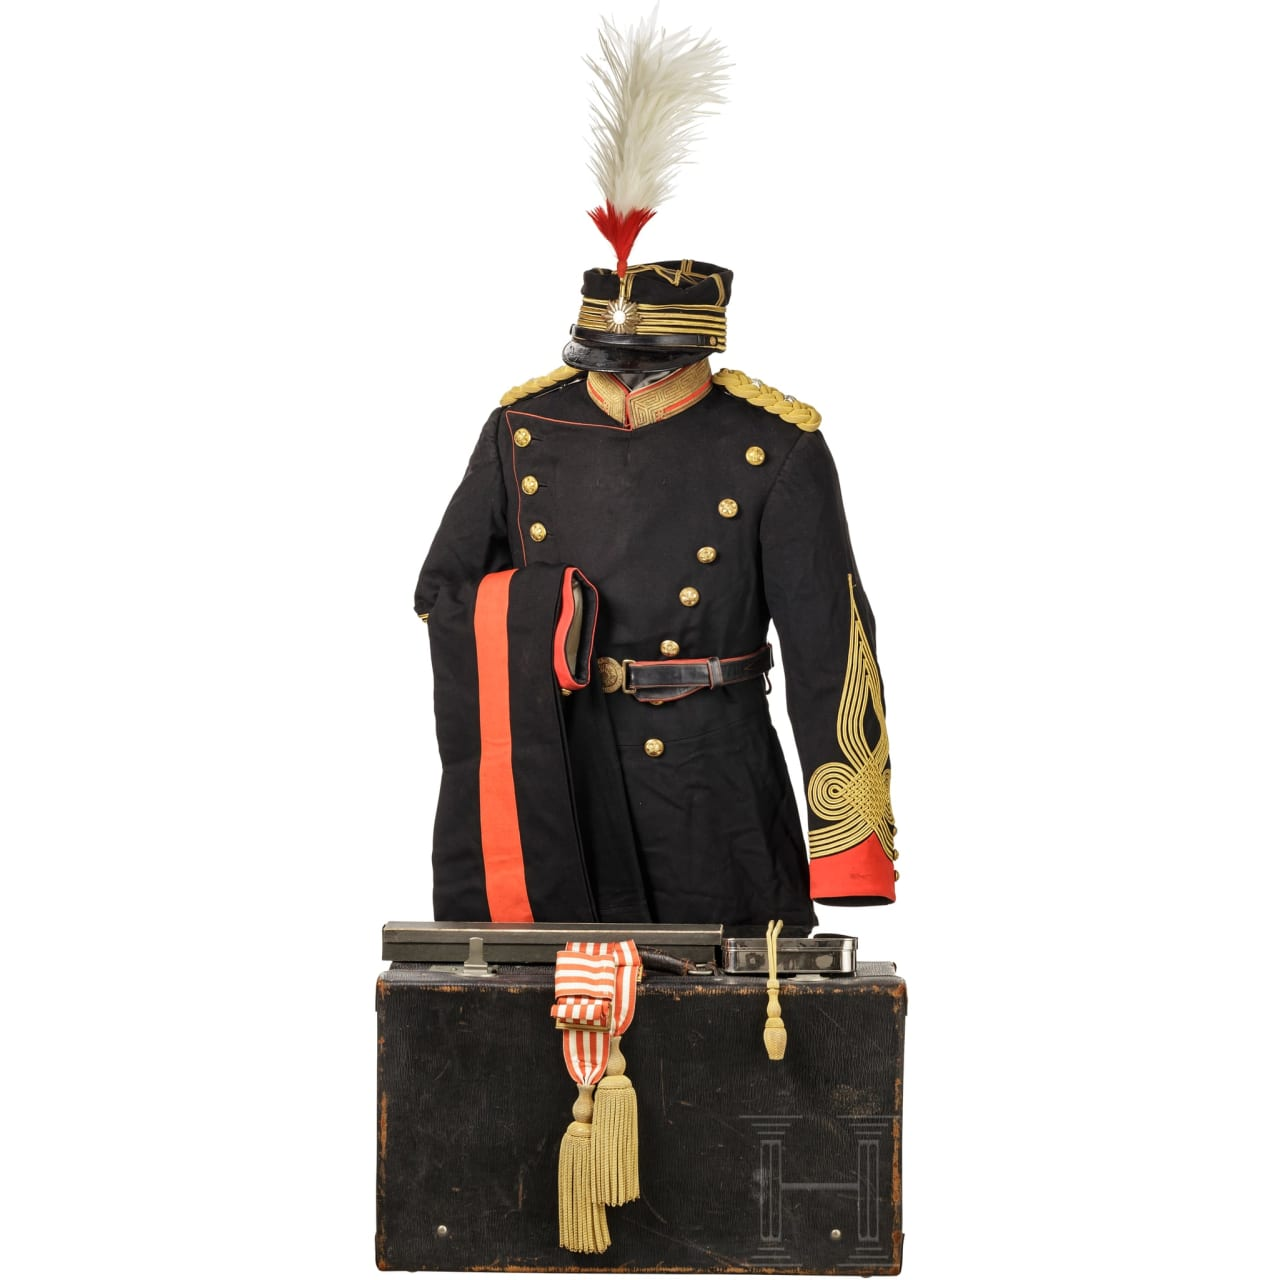 A WW II uniform ensemble for a Staff officer in the Imperial Japanese Army